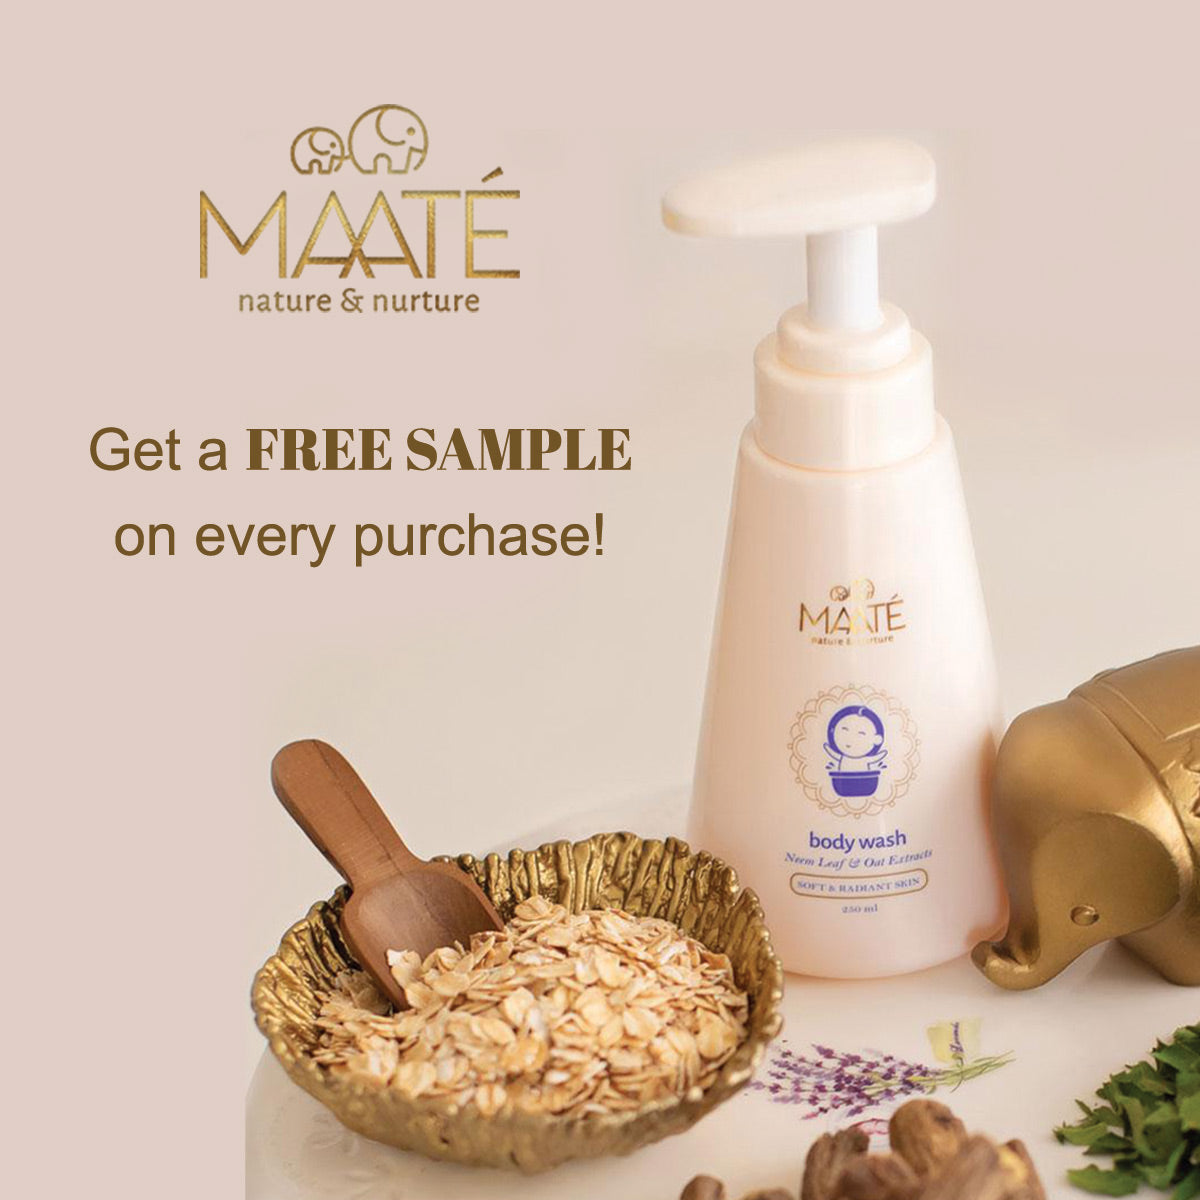 Free Sample on every purchase of Maate products